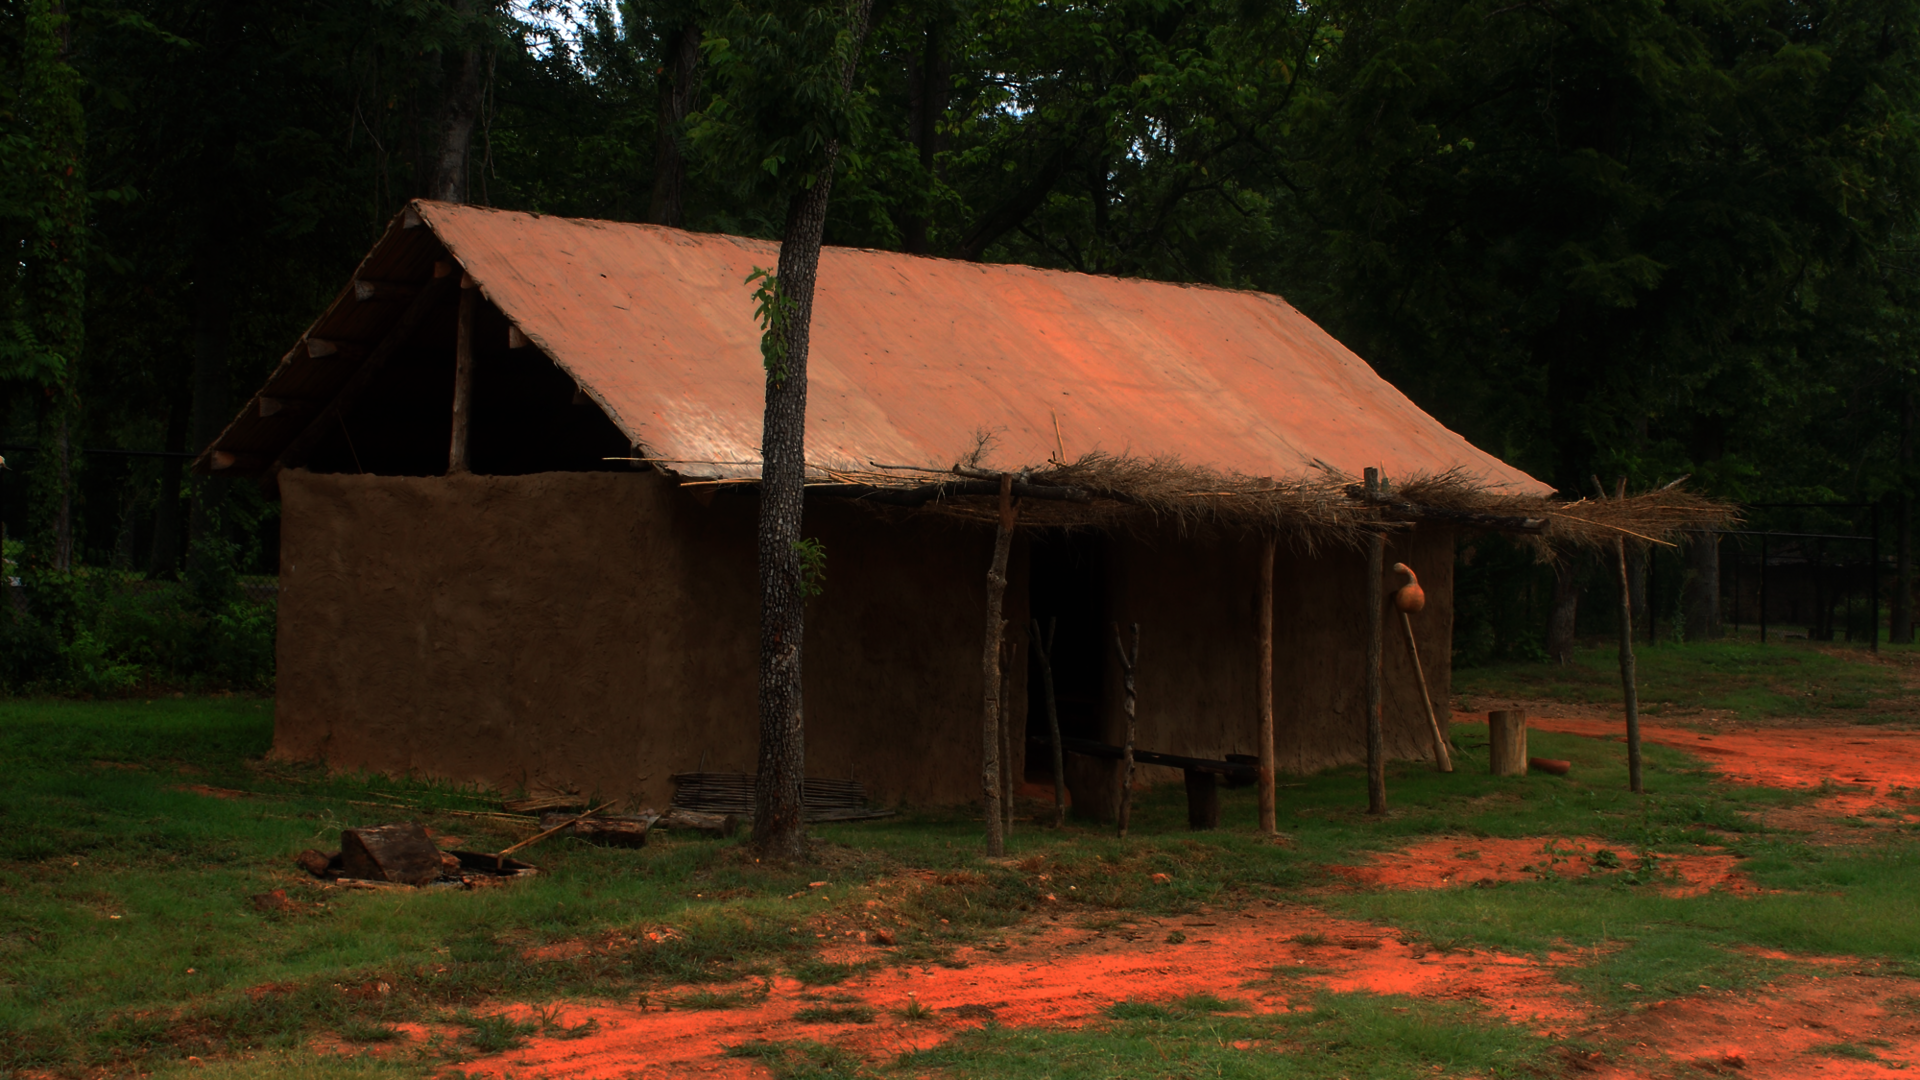 This is an example of a Late-Historic Indian Cherokee wattle and daub Summer House, built at a museum in Oklahoma.